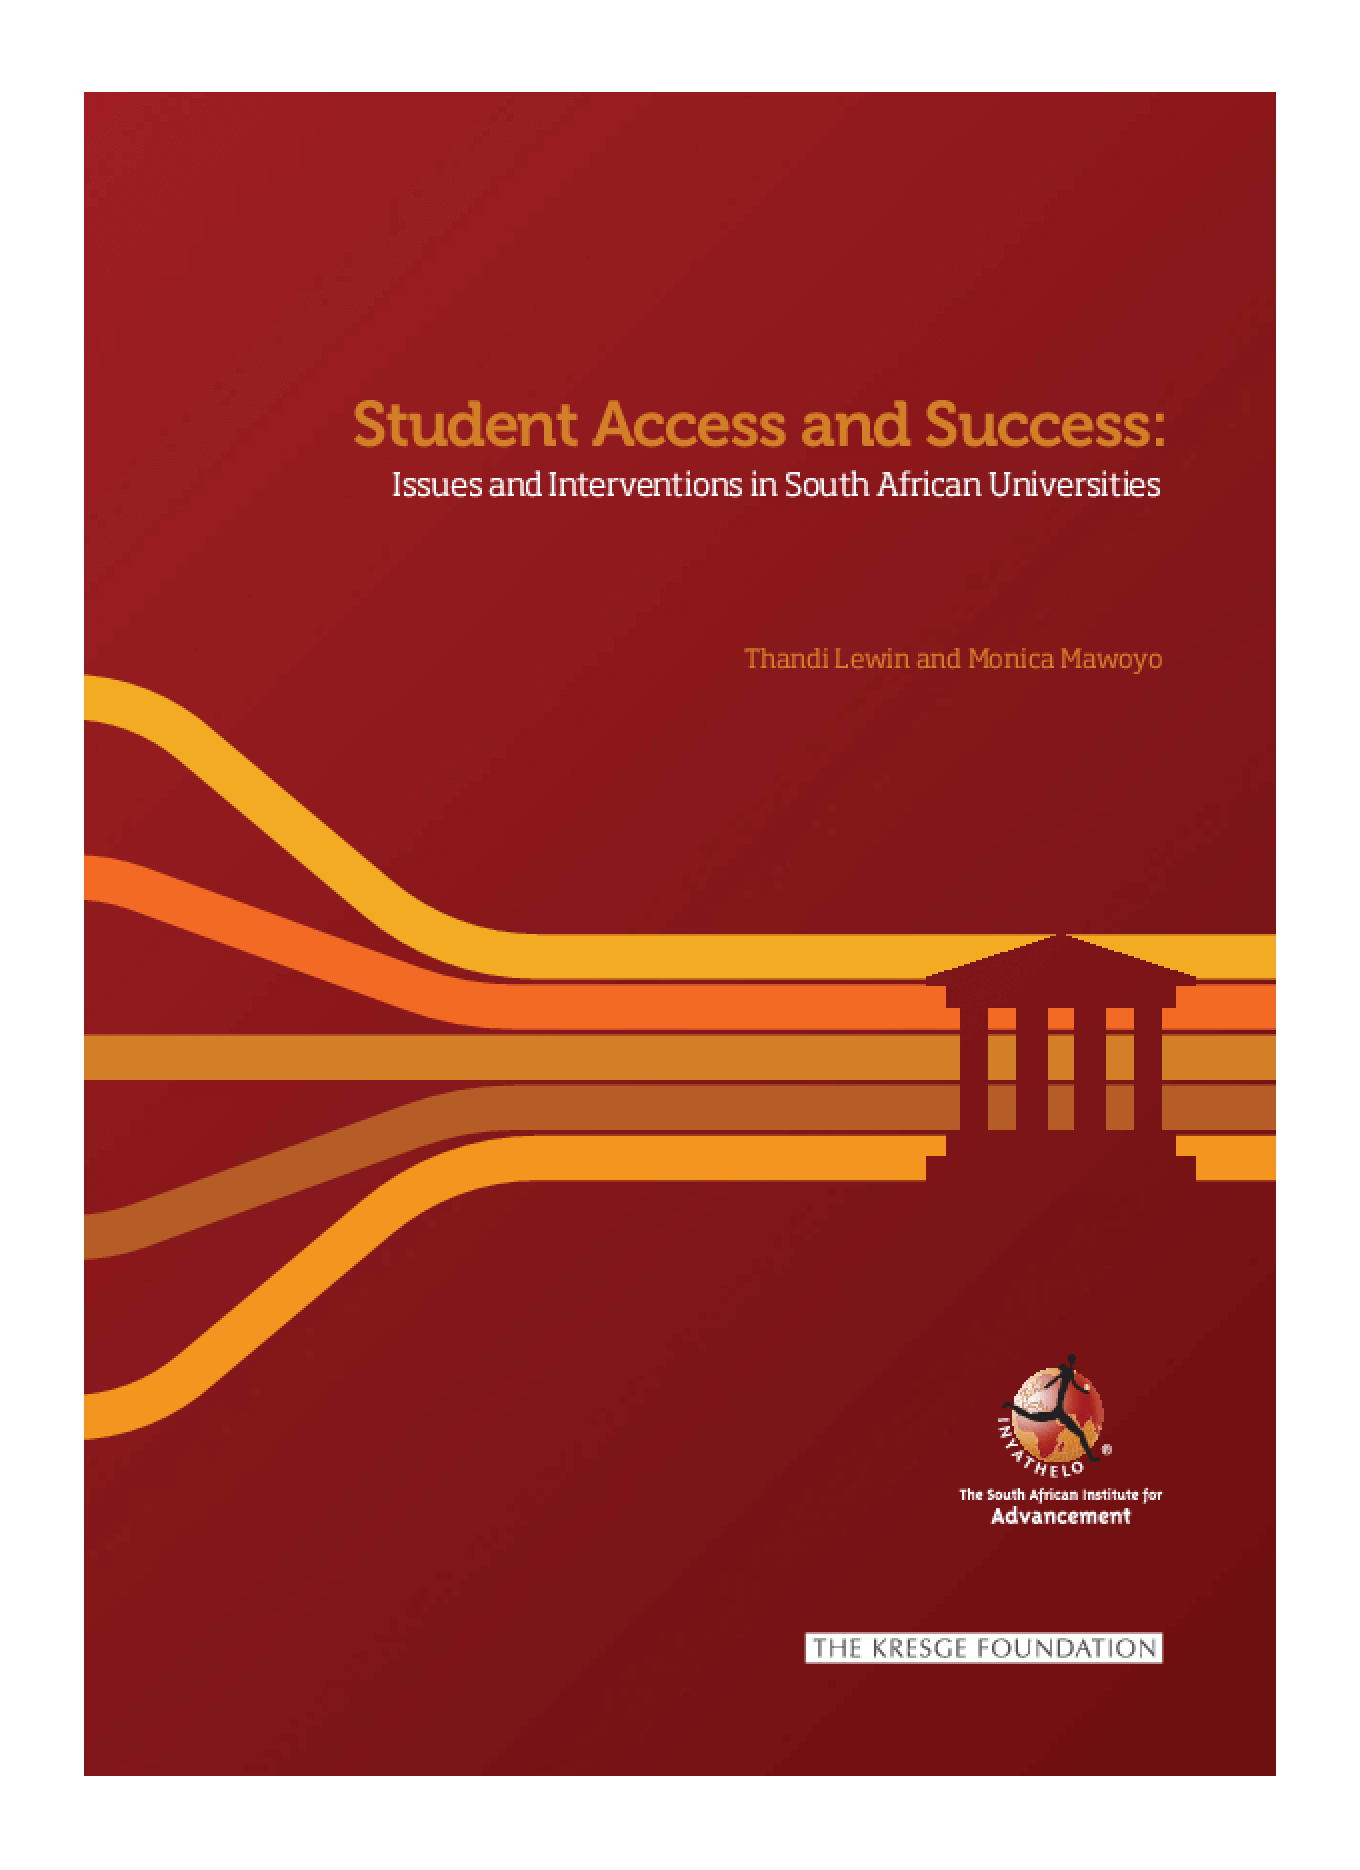 Student Access and Success: Issues and Interventions in South African Universities